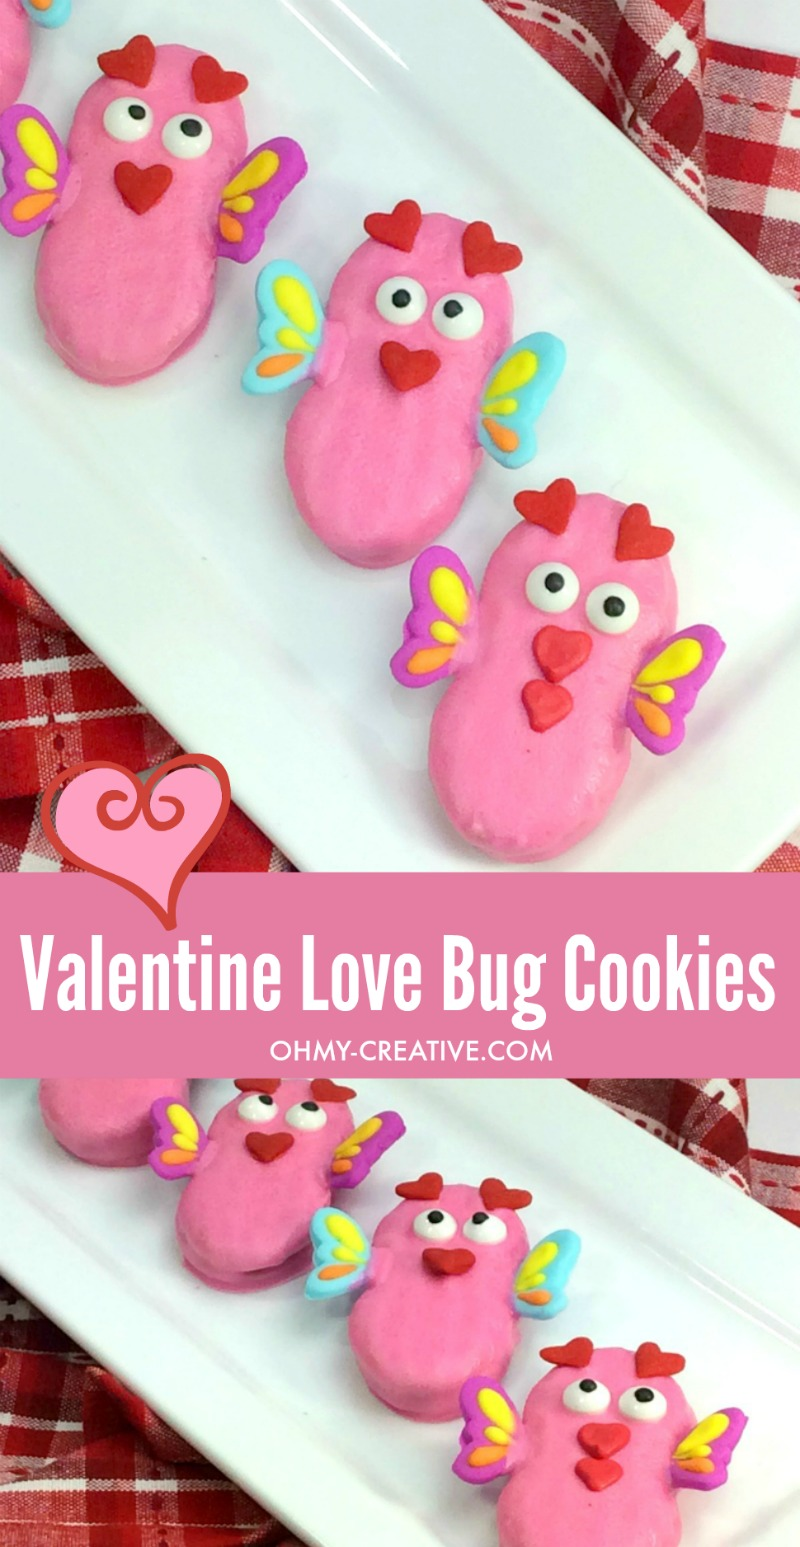 Love Bug Cookies | OHMY-CREATIVE.COM | Valentine's Day Cookies | Cookies for Valentine's Day | Valentine Treats | Valentine Cookie Recipe | Valentine Cookies | Nutter Butter Cookies